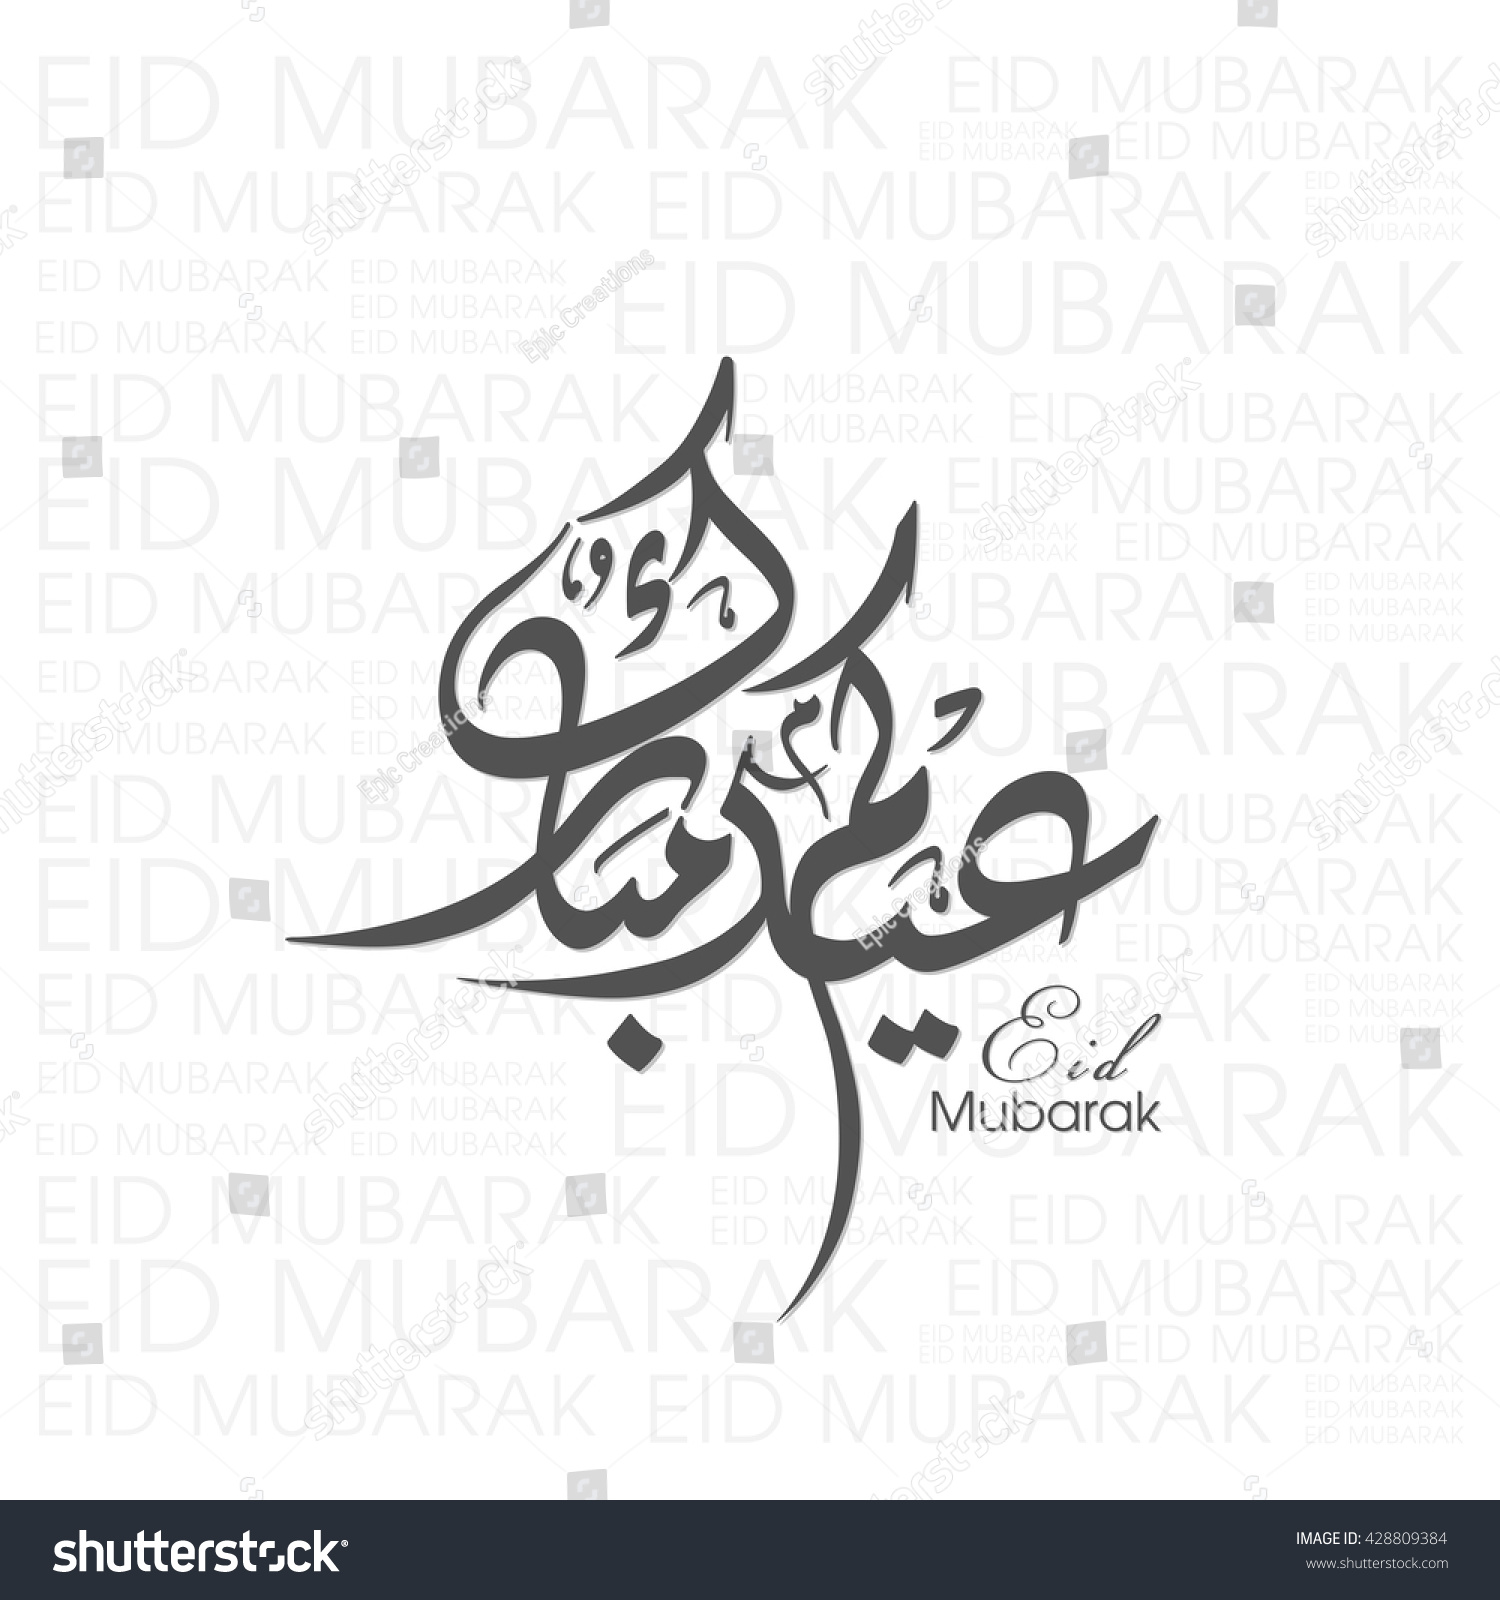 Illustration eid kum mubarak intricate arabic stock vector